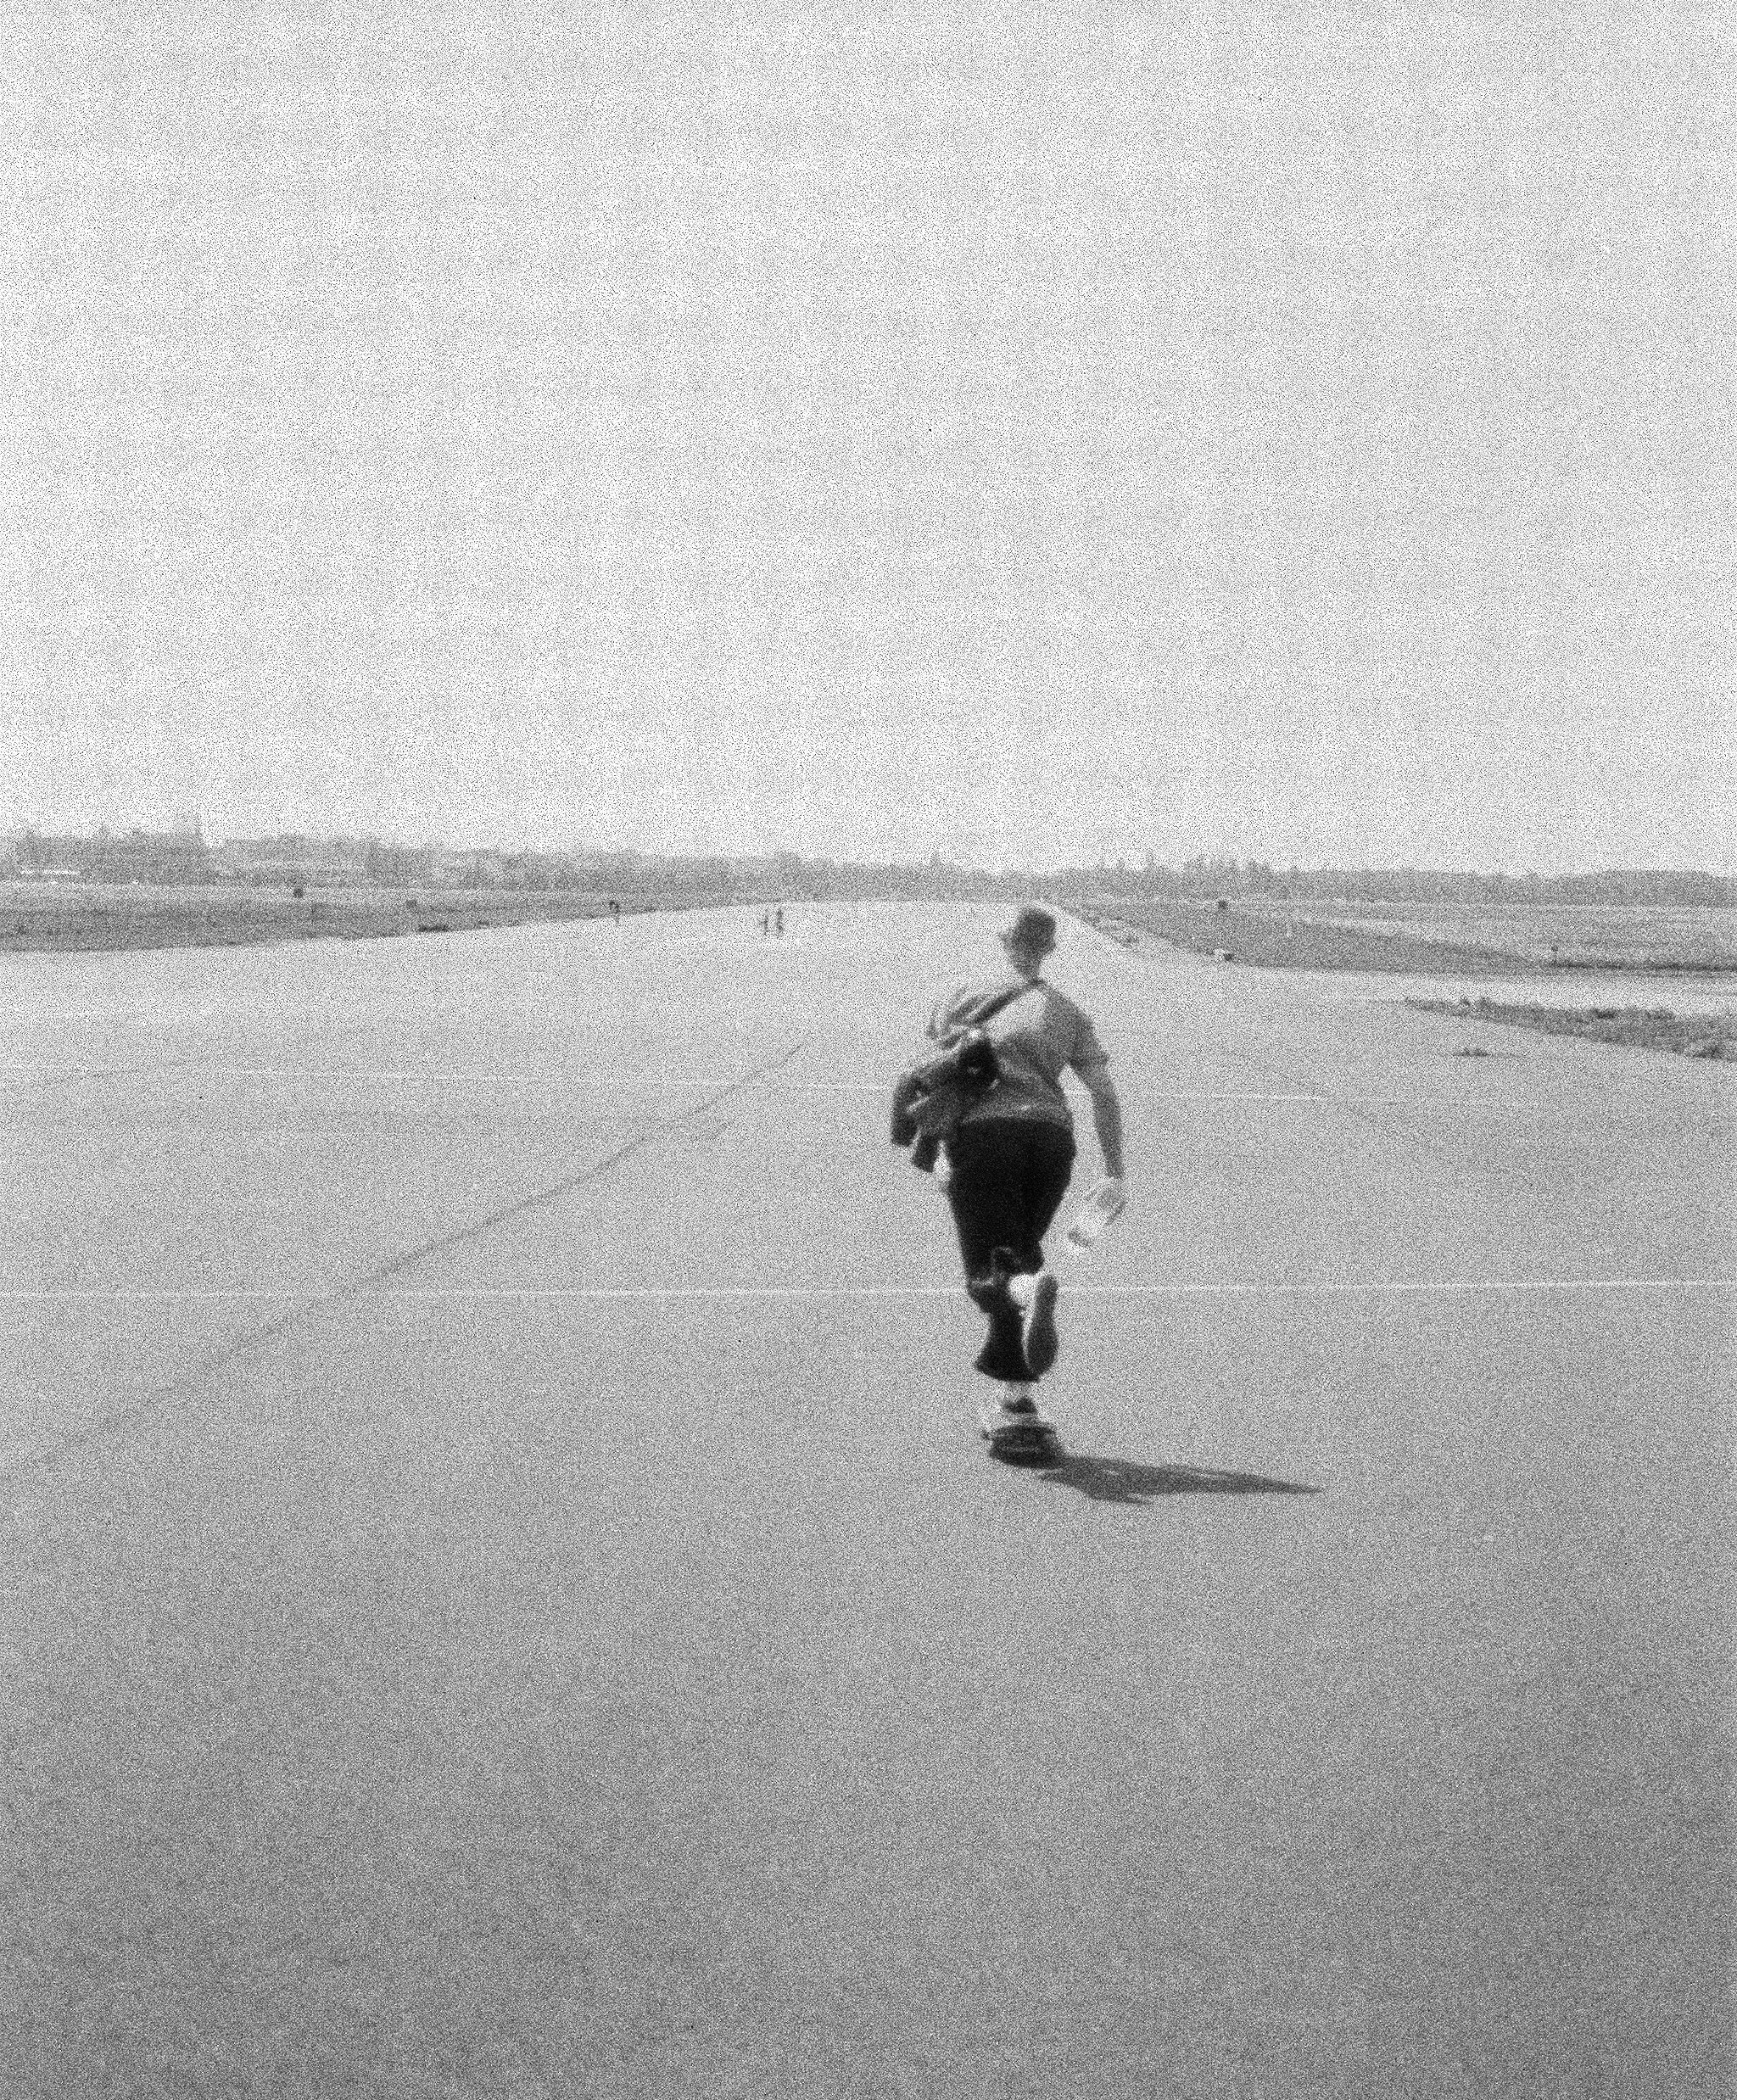 Tempelhof Feld, Berlin. One of the finest places to sweat your Augustiner-induced hangover.